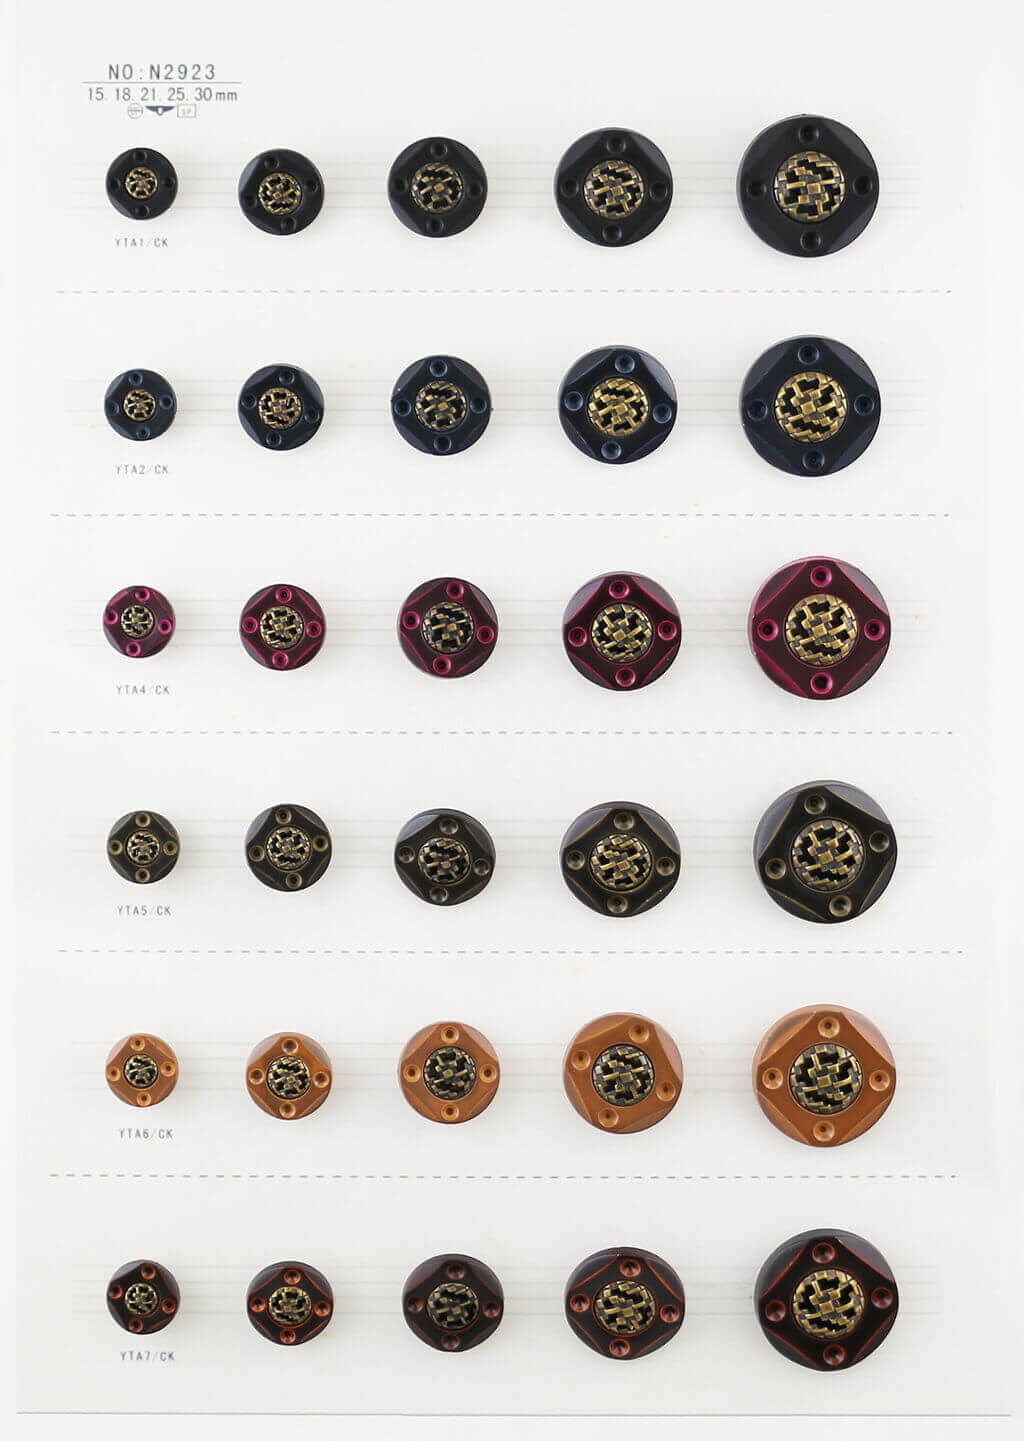 imitation leather button catalogue-8